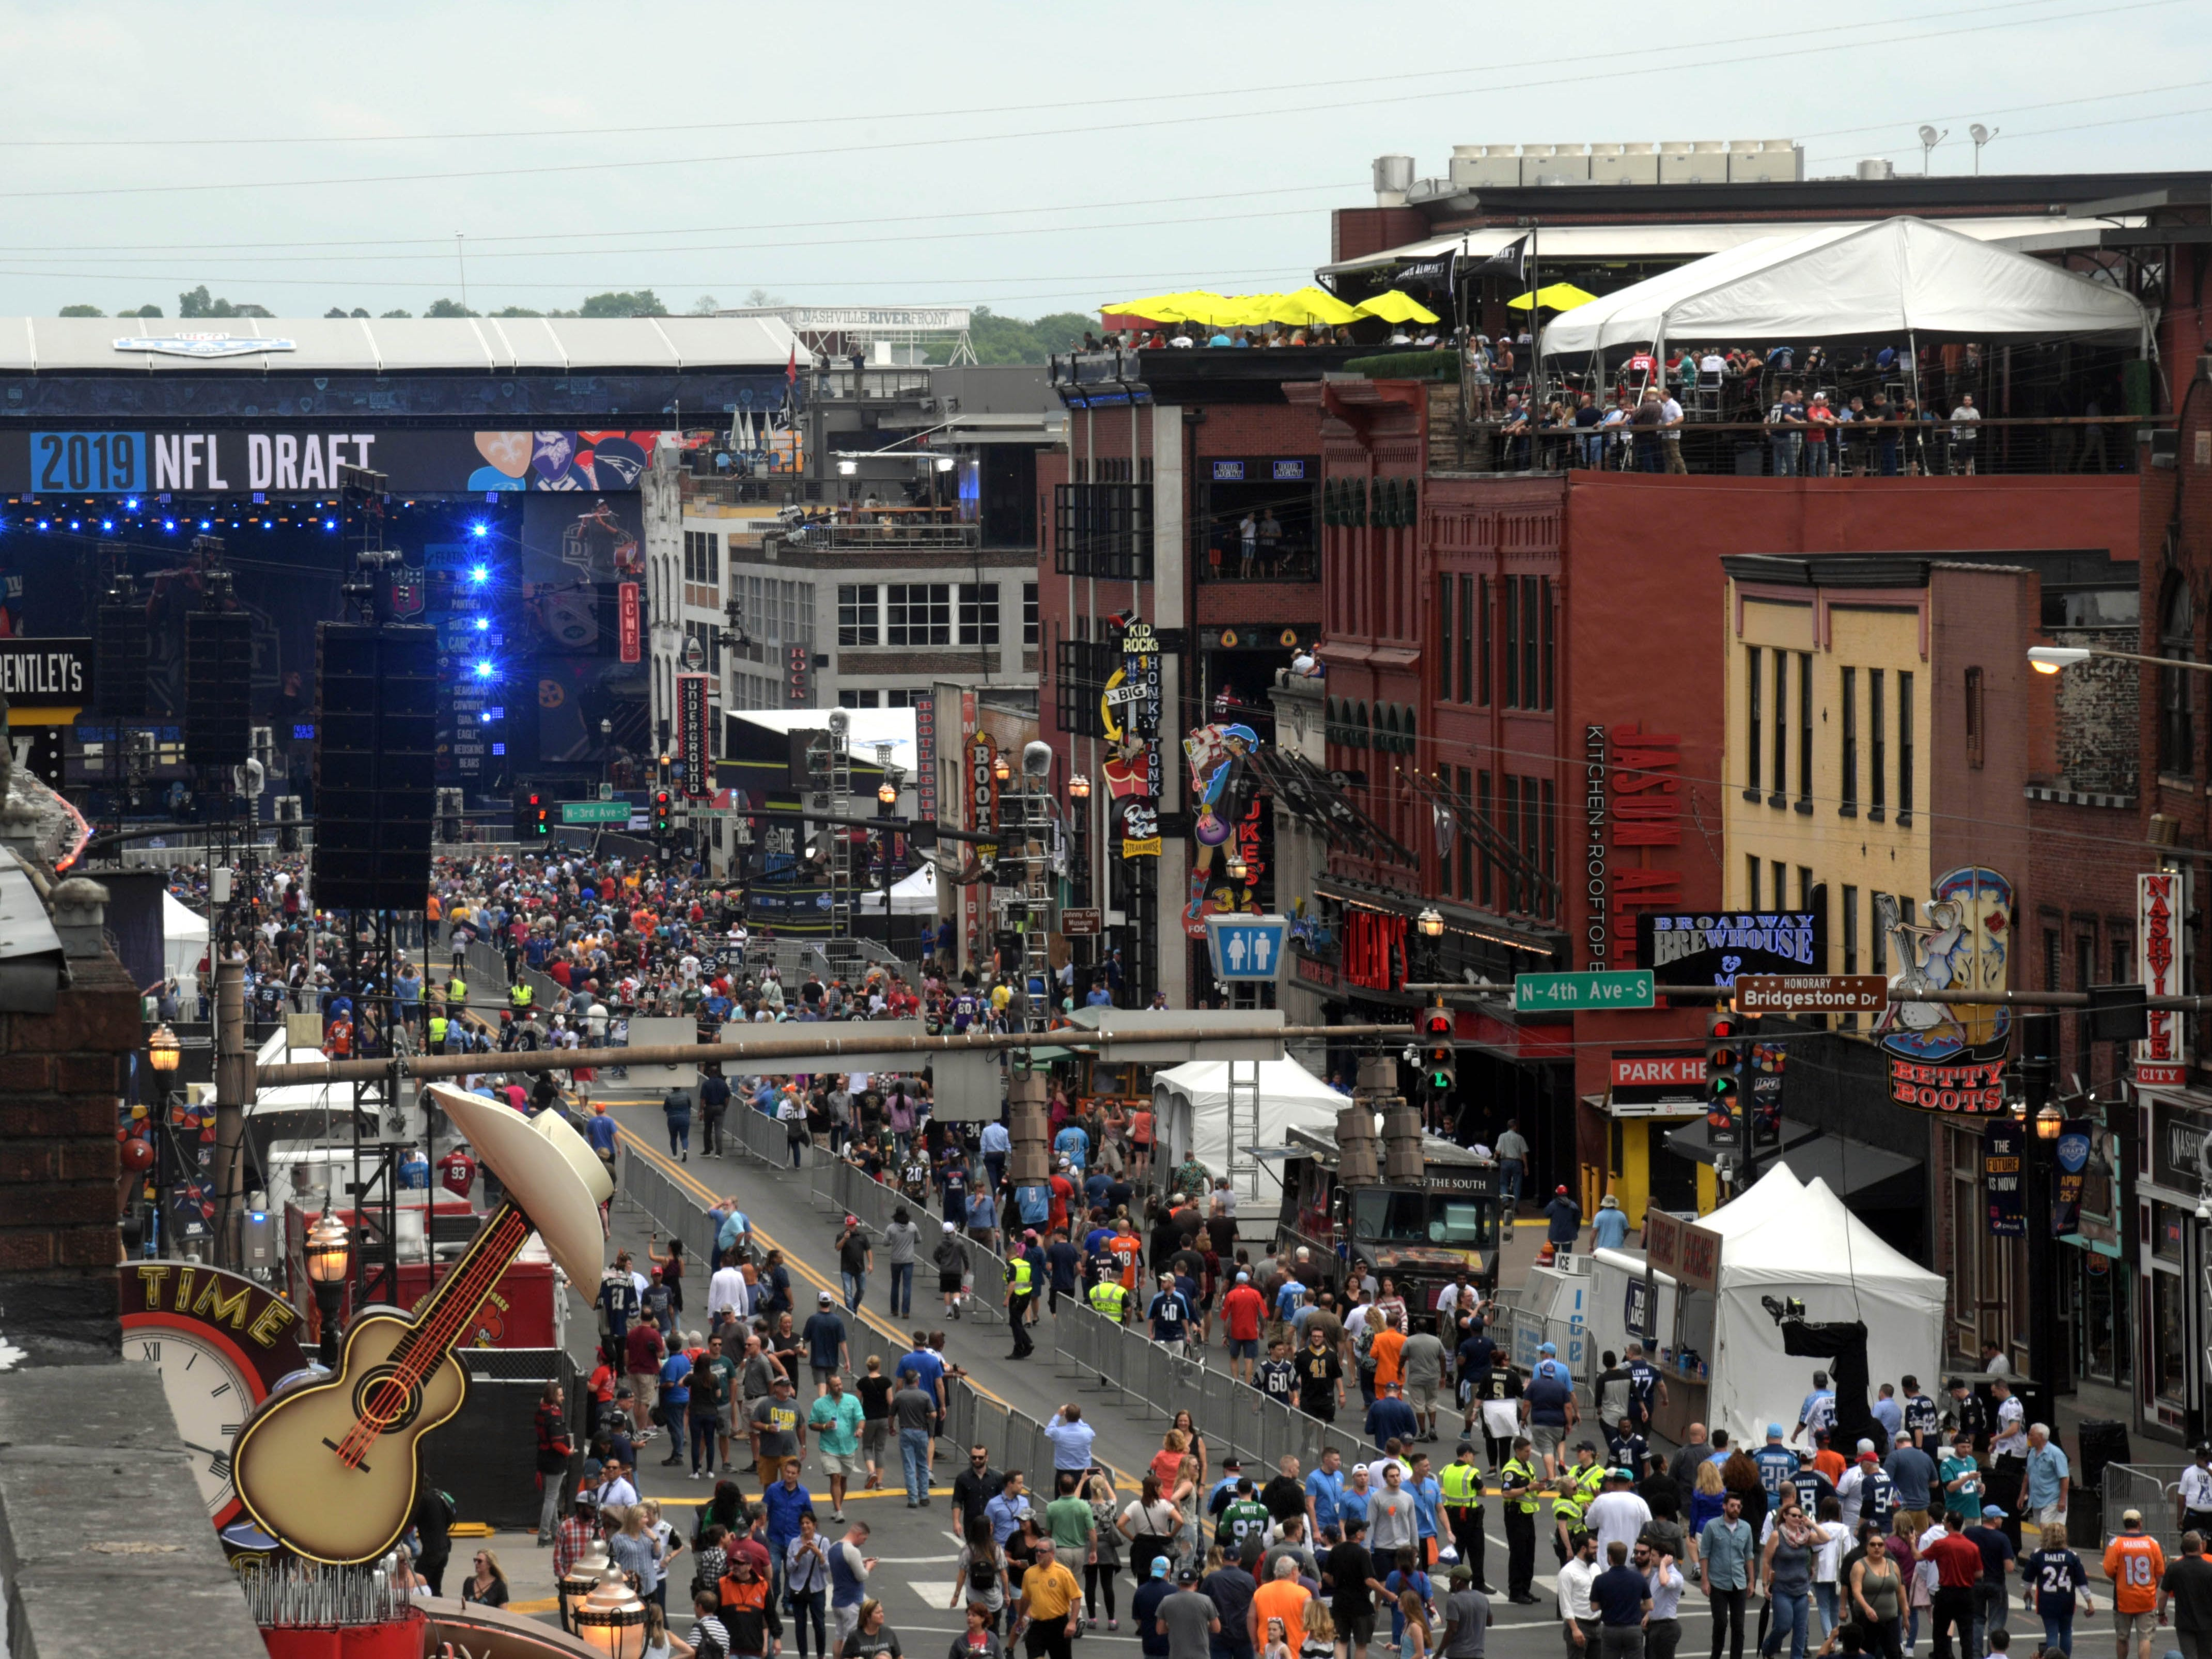 General view of Broadway prior to the first round of the 2019 NFL draft.